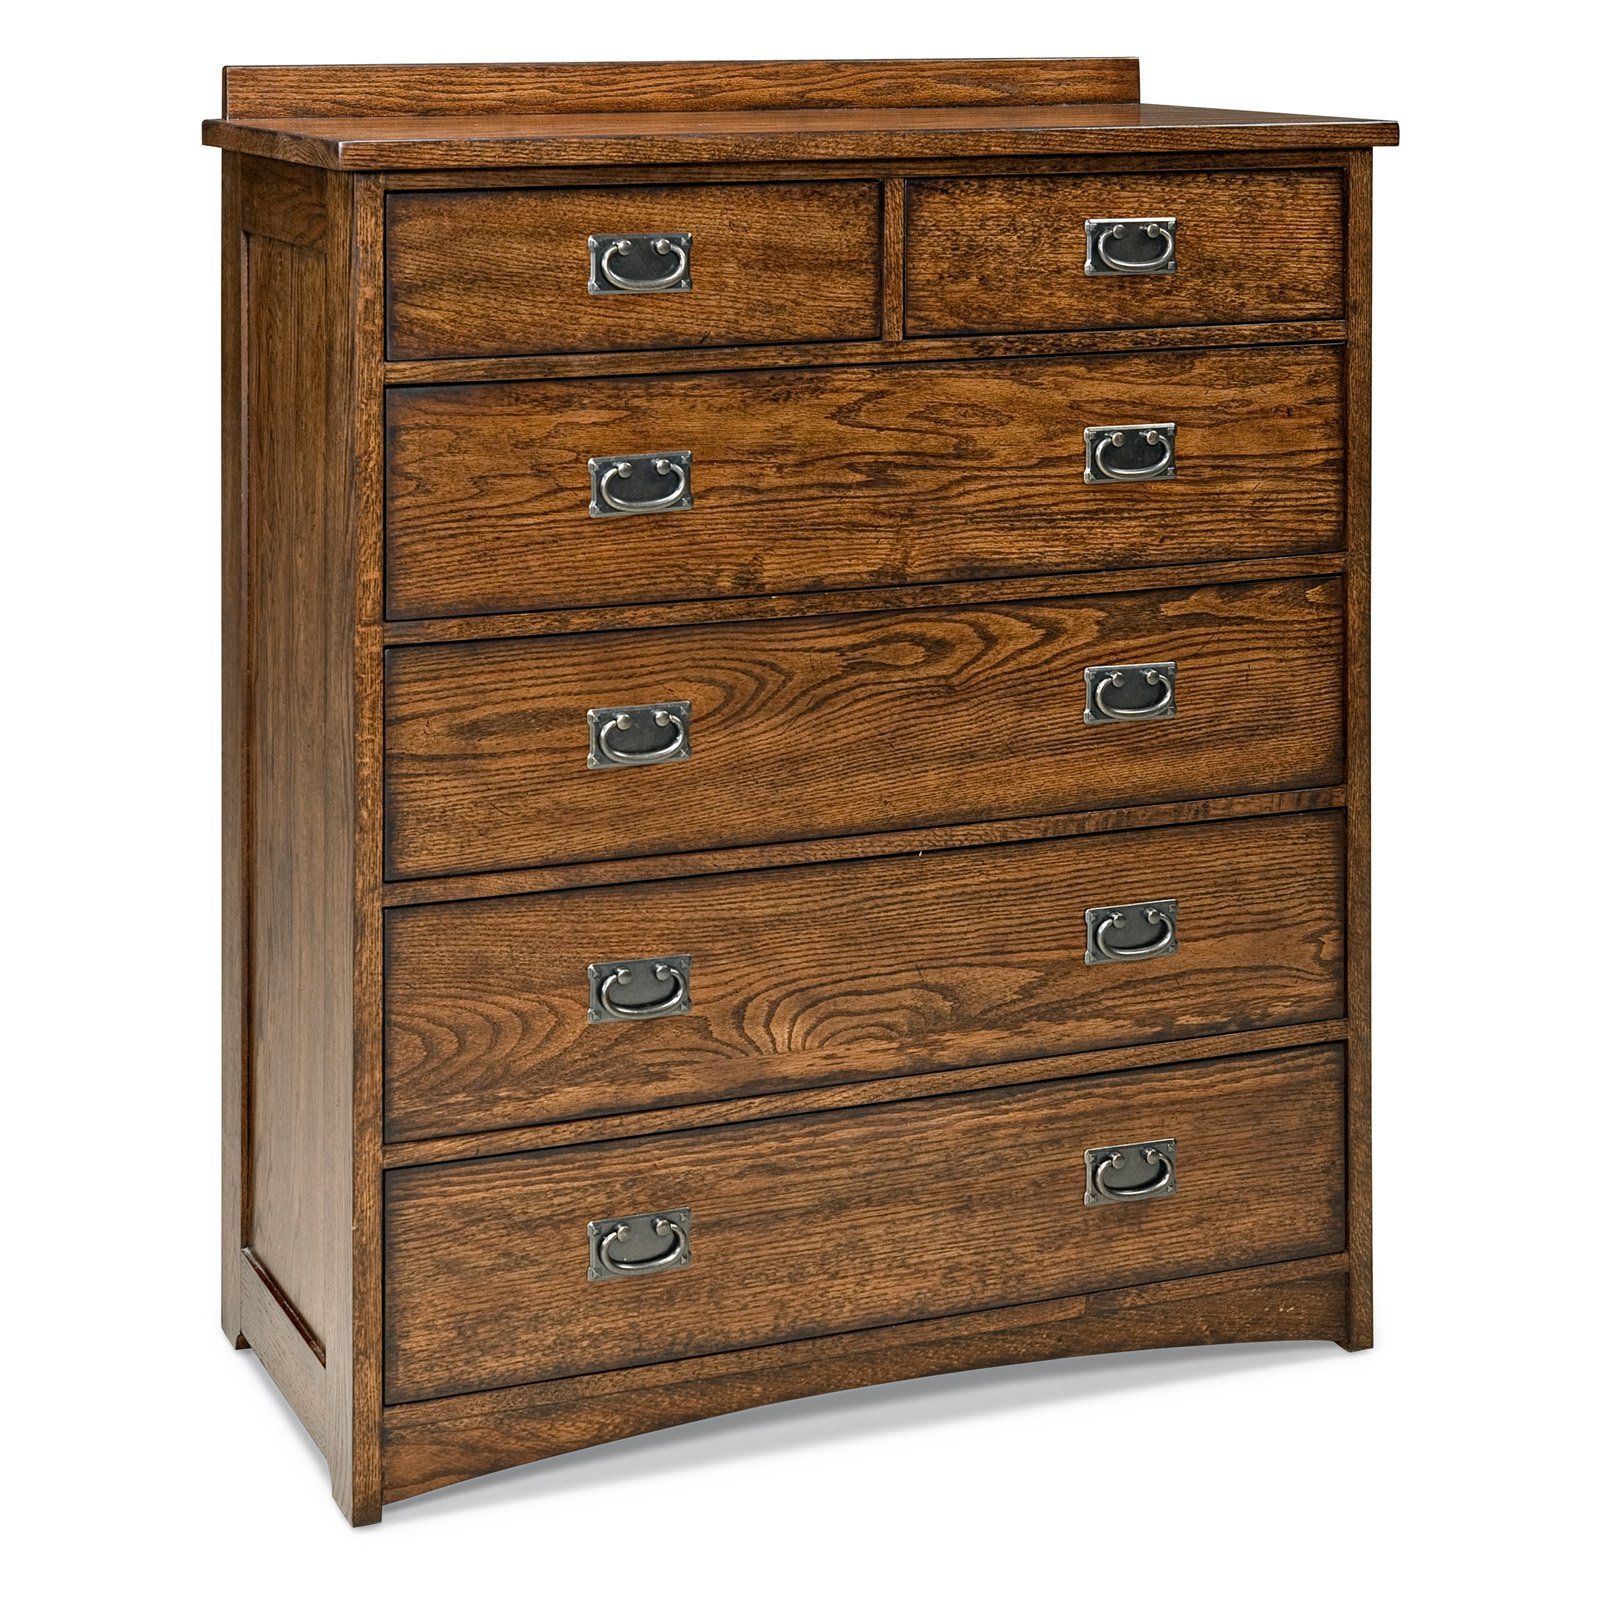 Imagio Home Oak Park 6 Drawer Chest